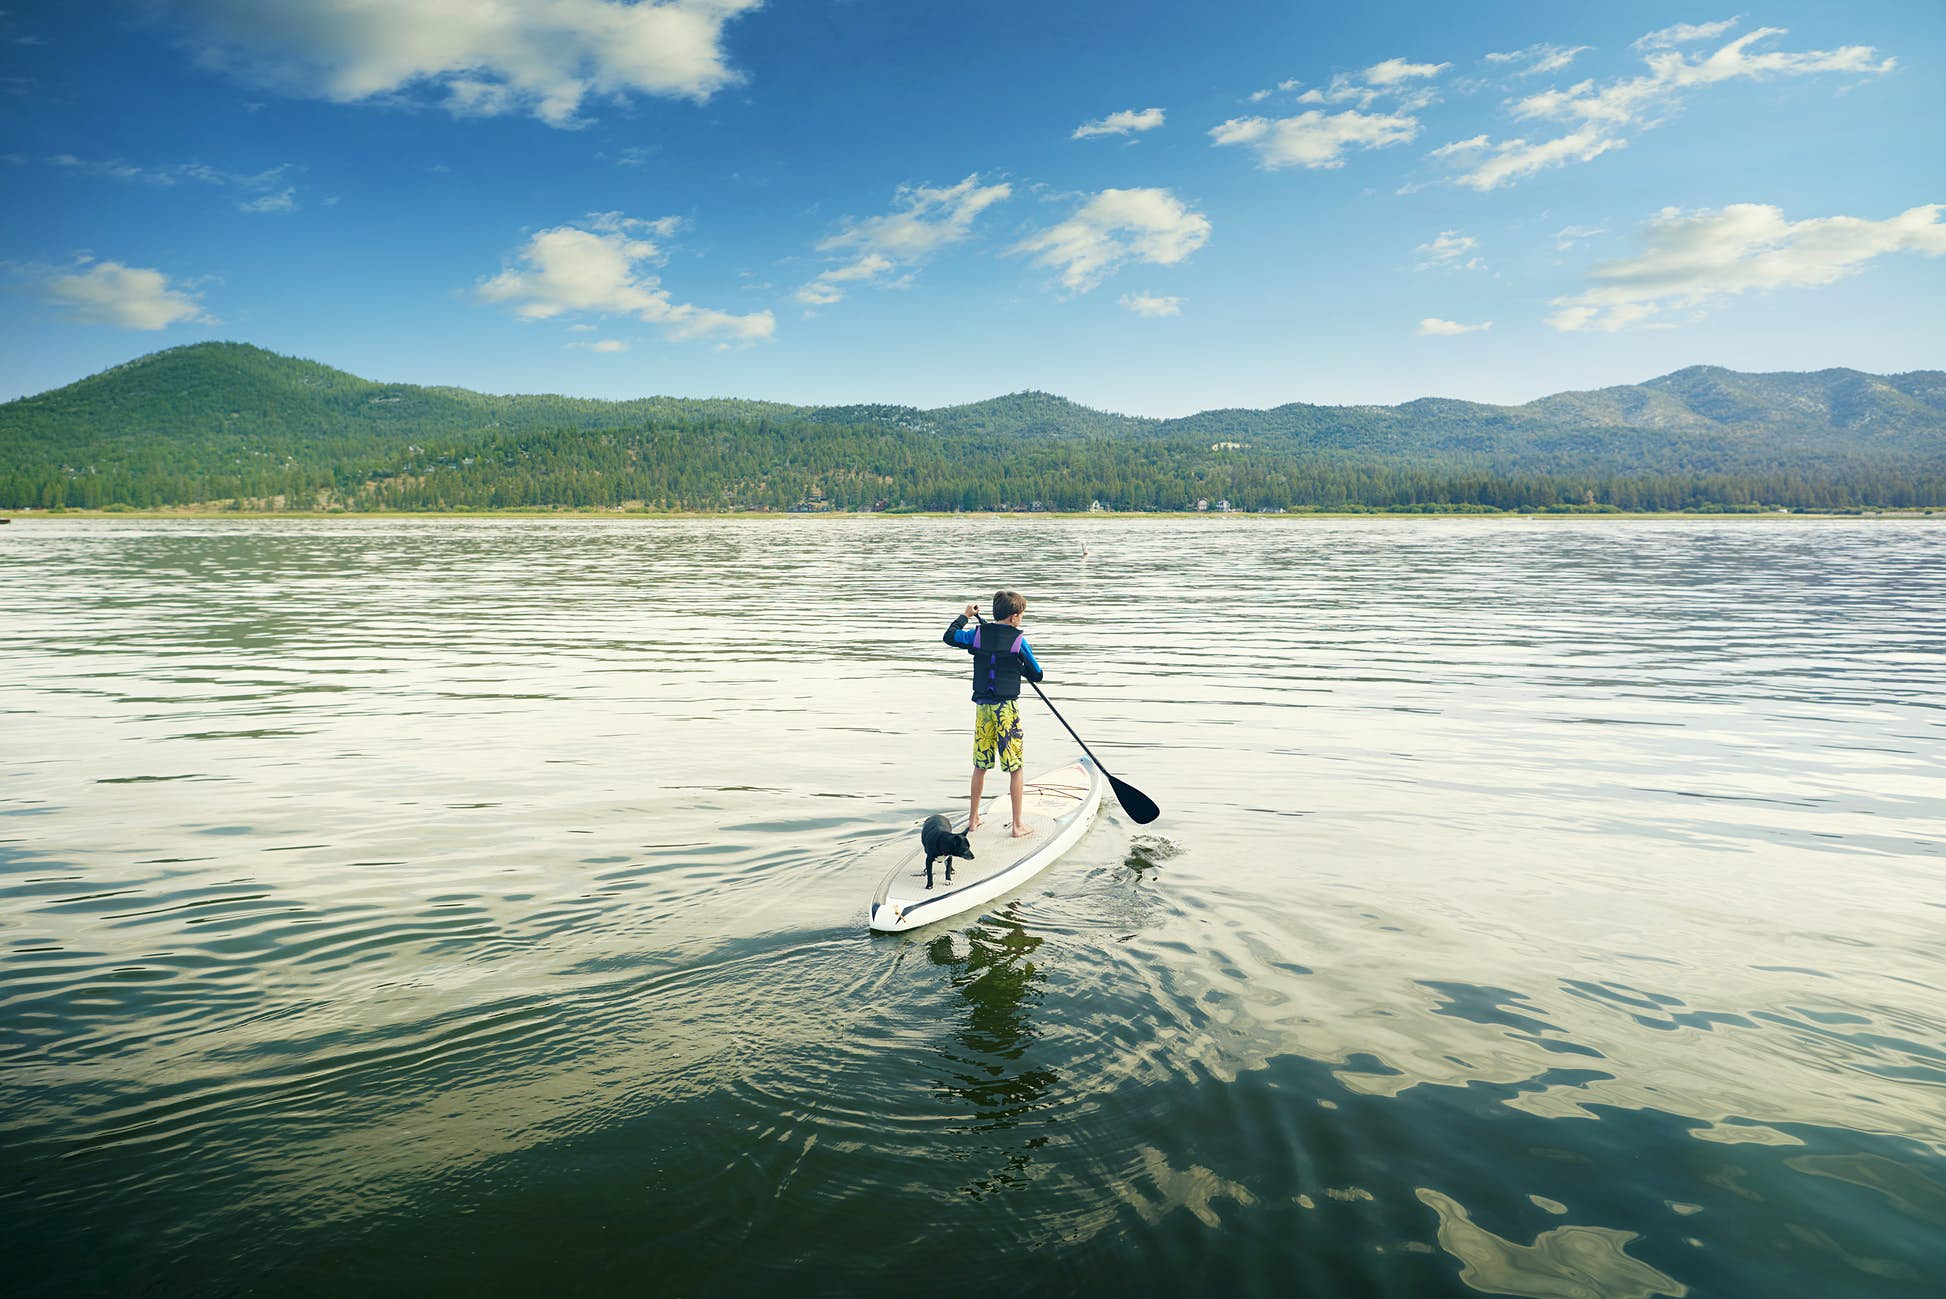 Big Bear Lake in California was the top trending destination © The Image Bank / Getty Images